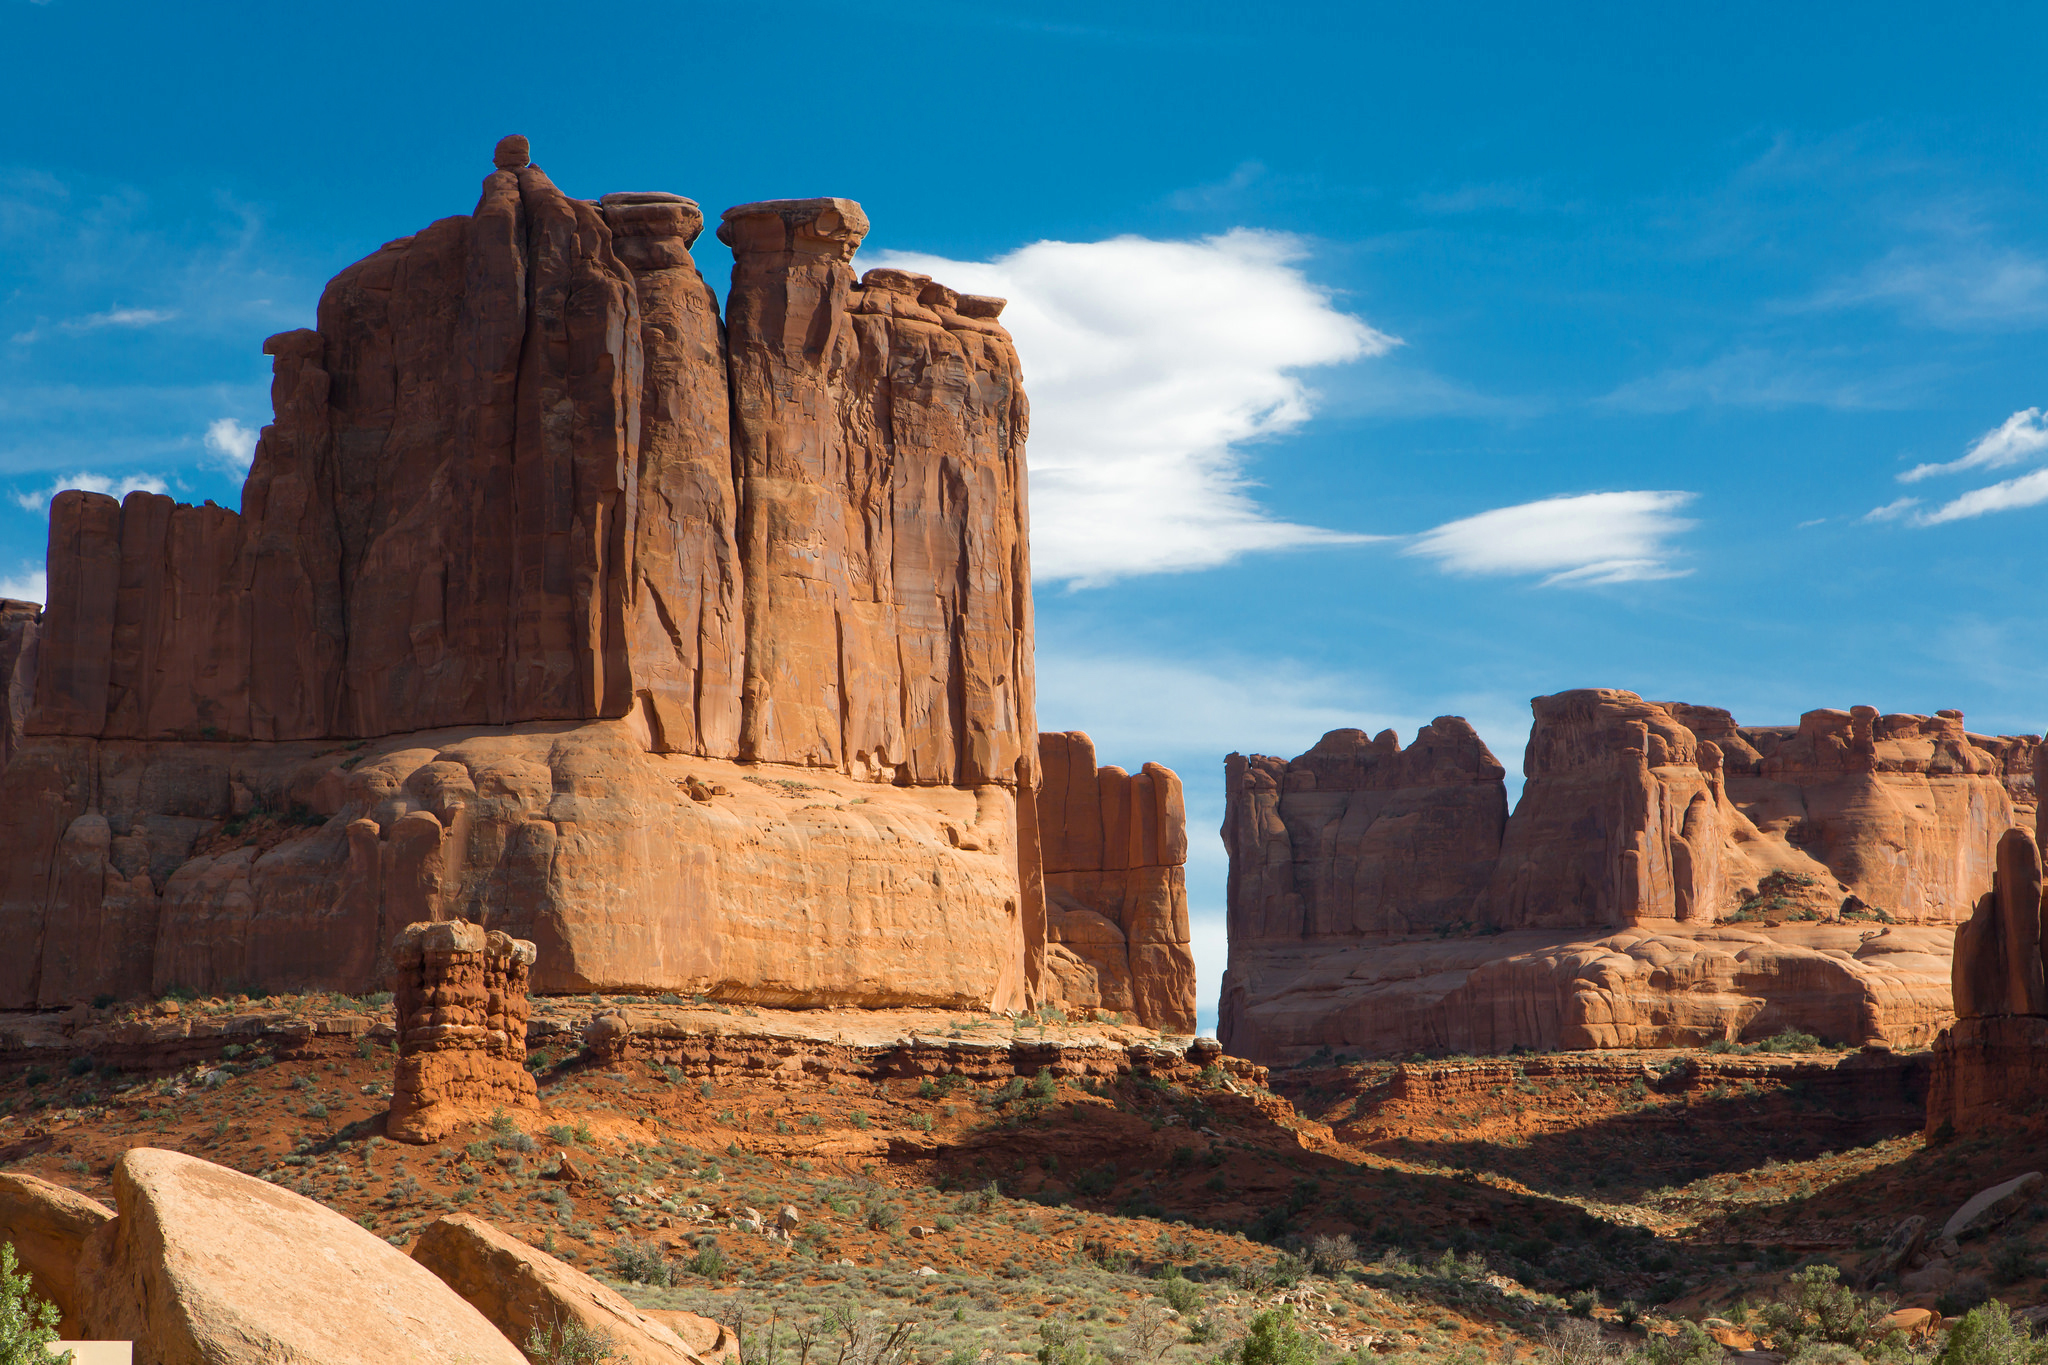 monument valley chatrooms Dating online chat rooms downtown colorado  it's 10 miles of trail systems to connect major attractions and parks, including monument valley park and america.